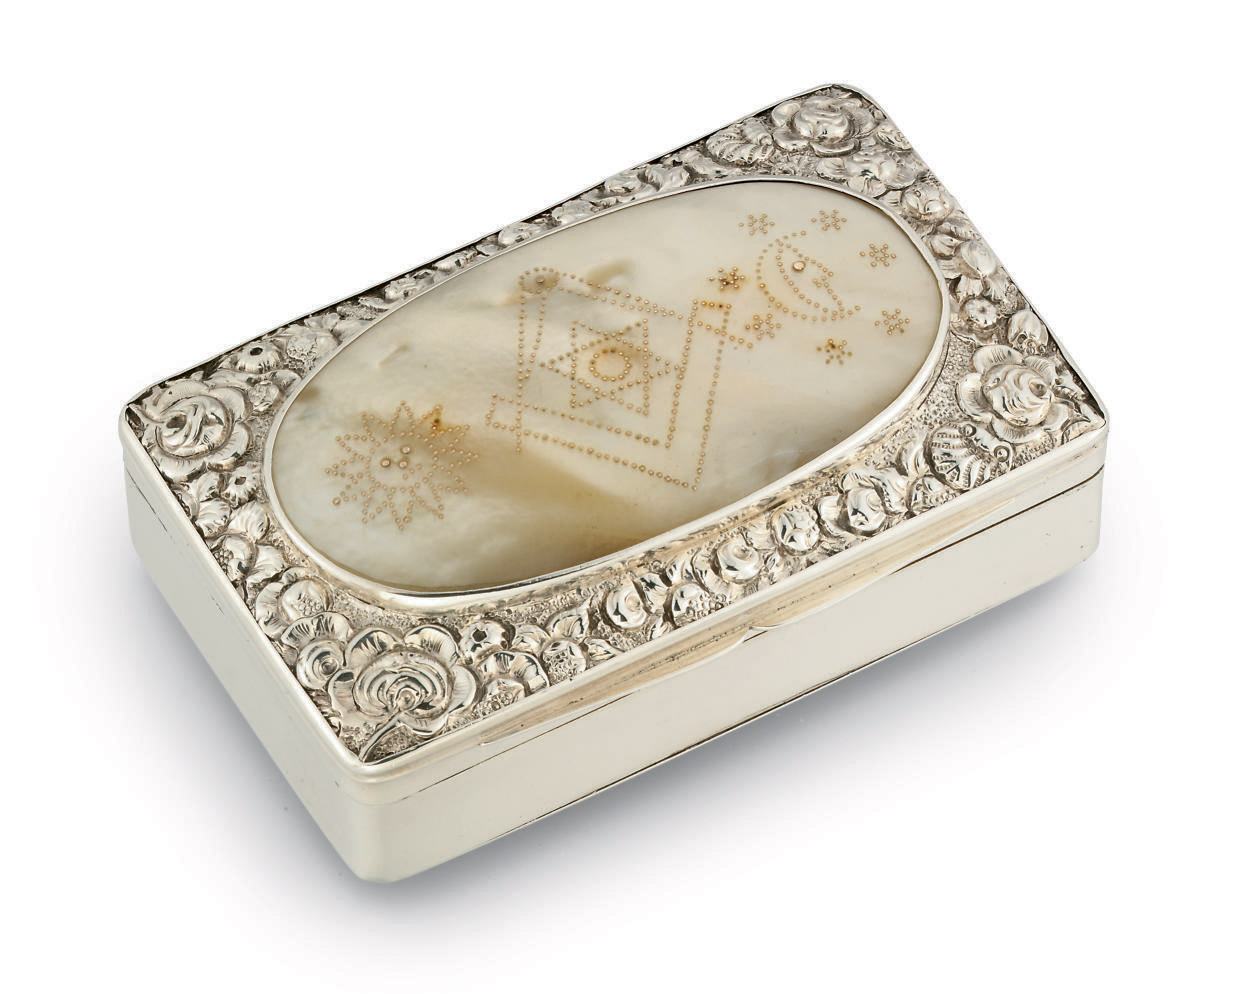 A GEORGE III SILVER AND MOTHER-OF-PEARL SNUFF-BOX